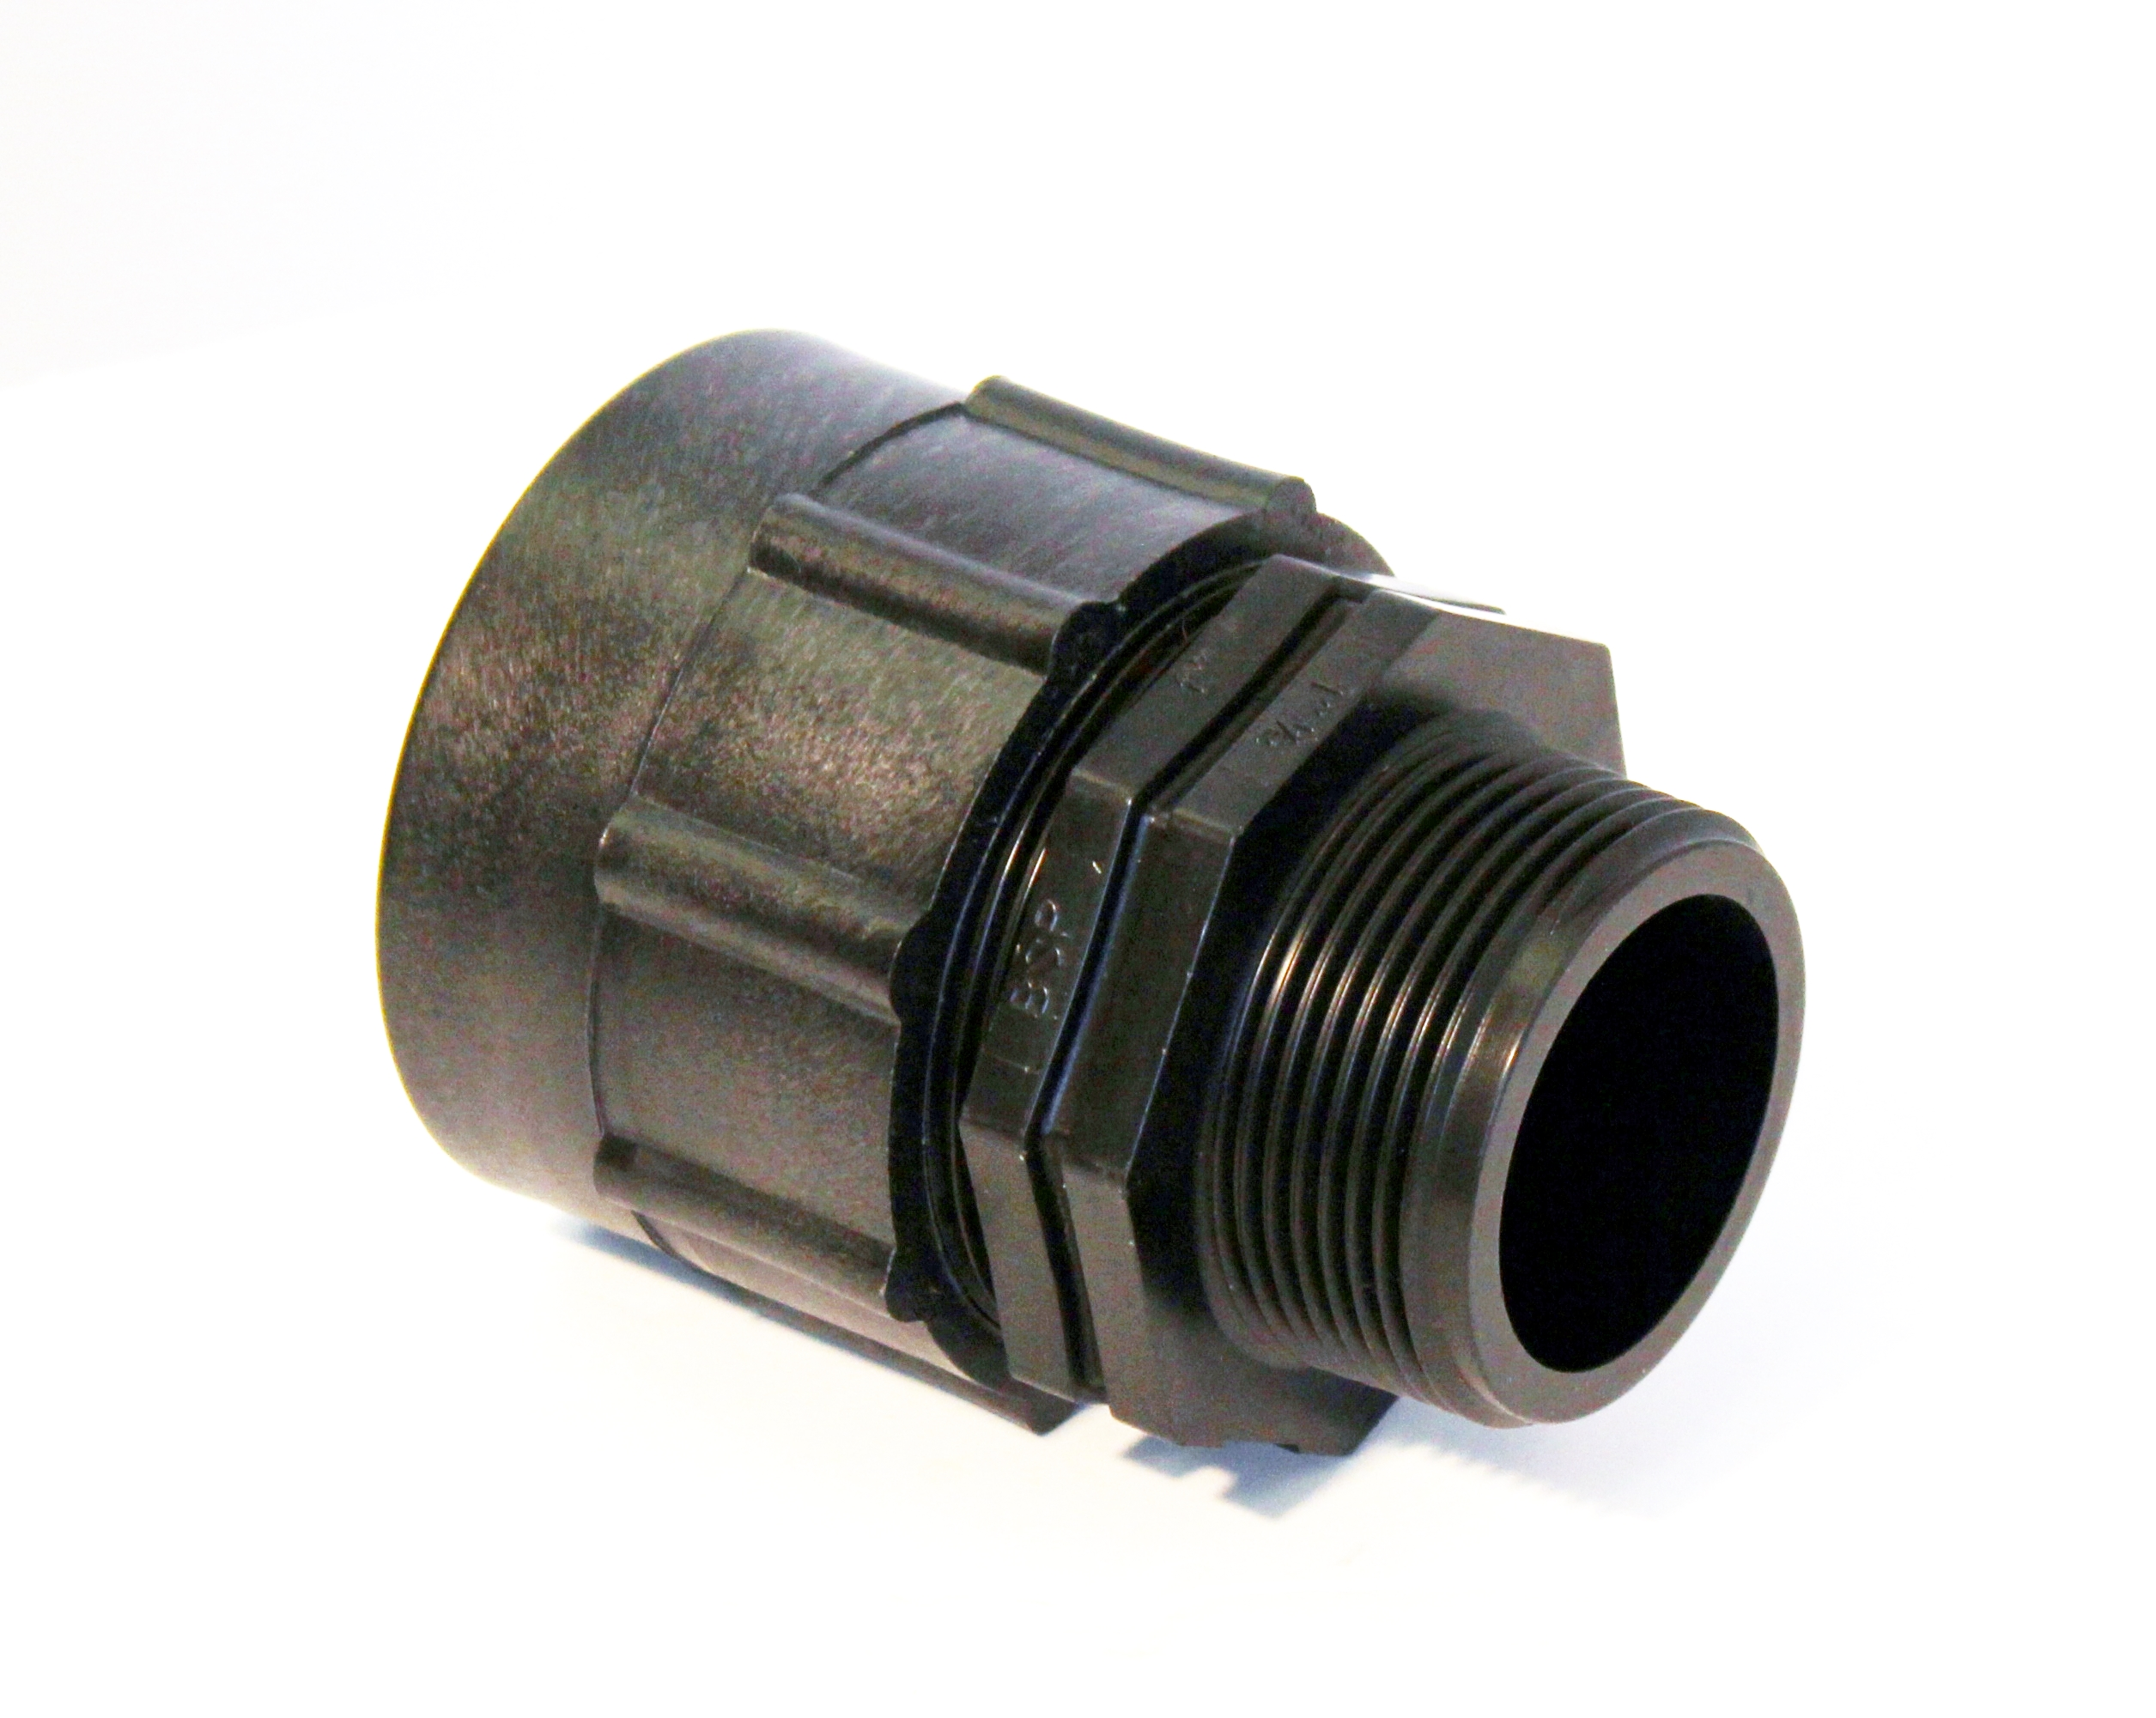 Ibc adapter fitting to quot bsp male thread storage tank